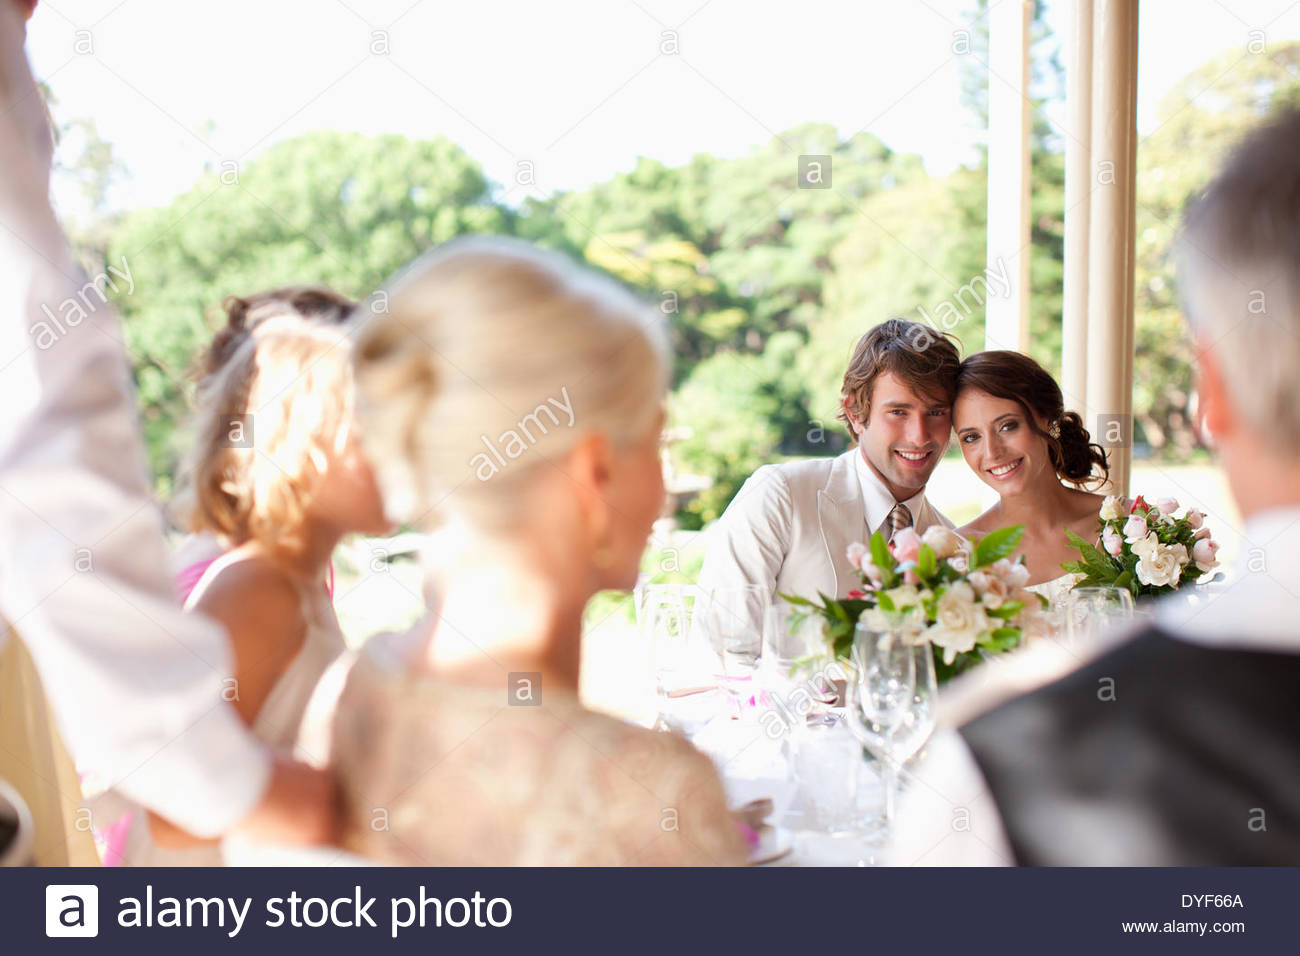 Family celebrating at wedding reception - Stock Image